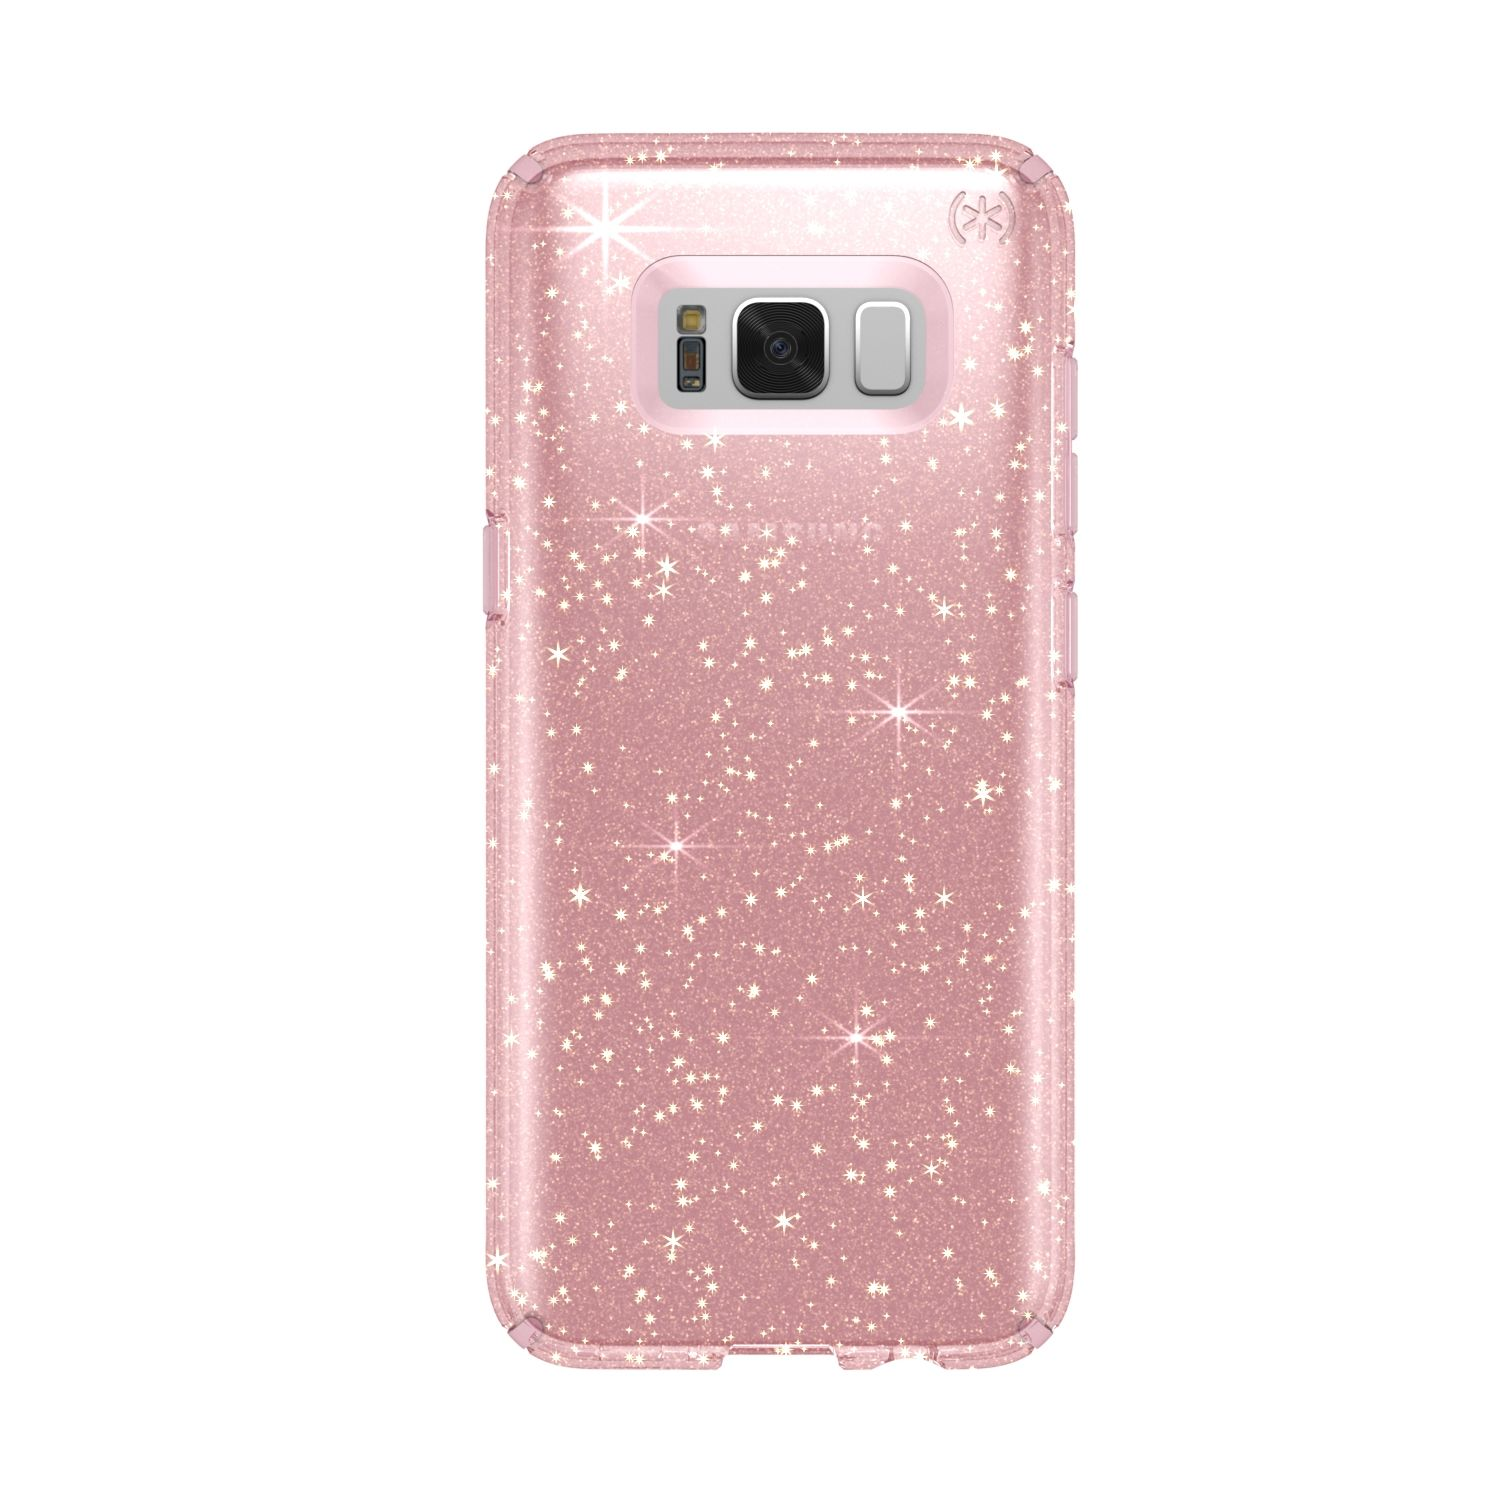 Протектор Speck Presidio за Samsung Galaxy S8, Clear Gold Glitter/Rose Pink, SPS8CLRP